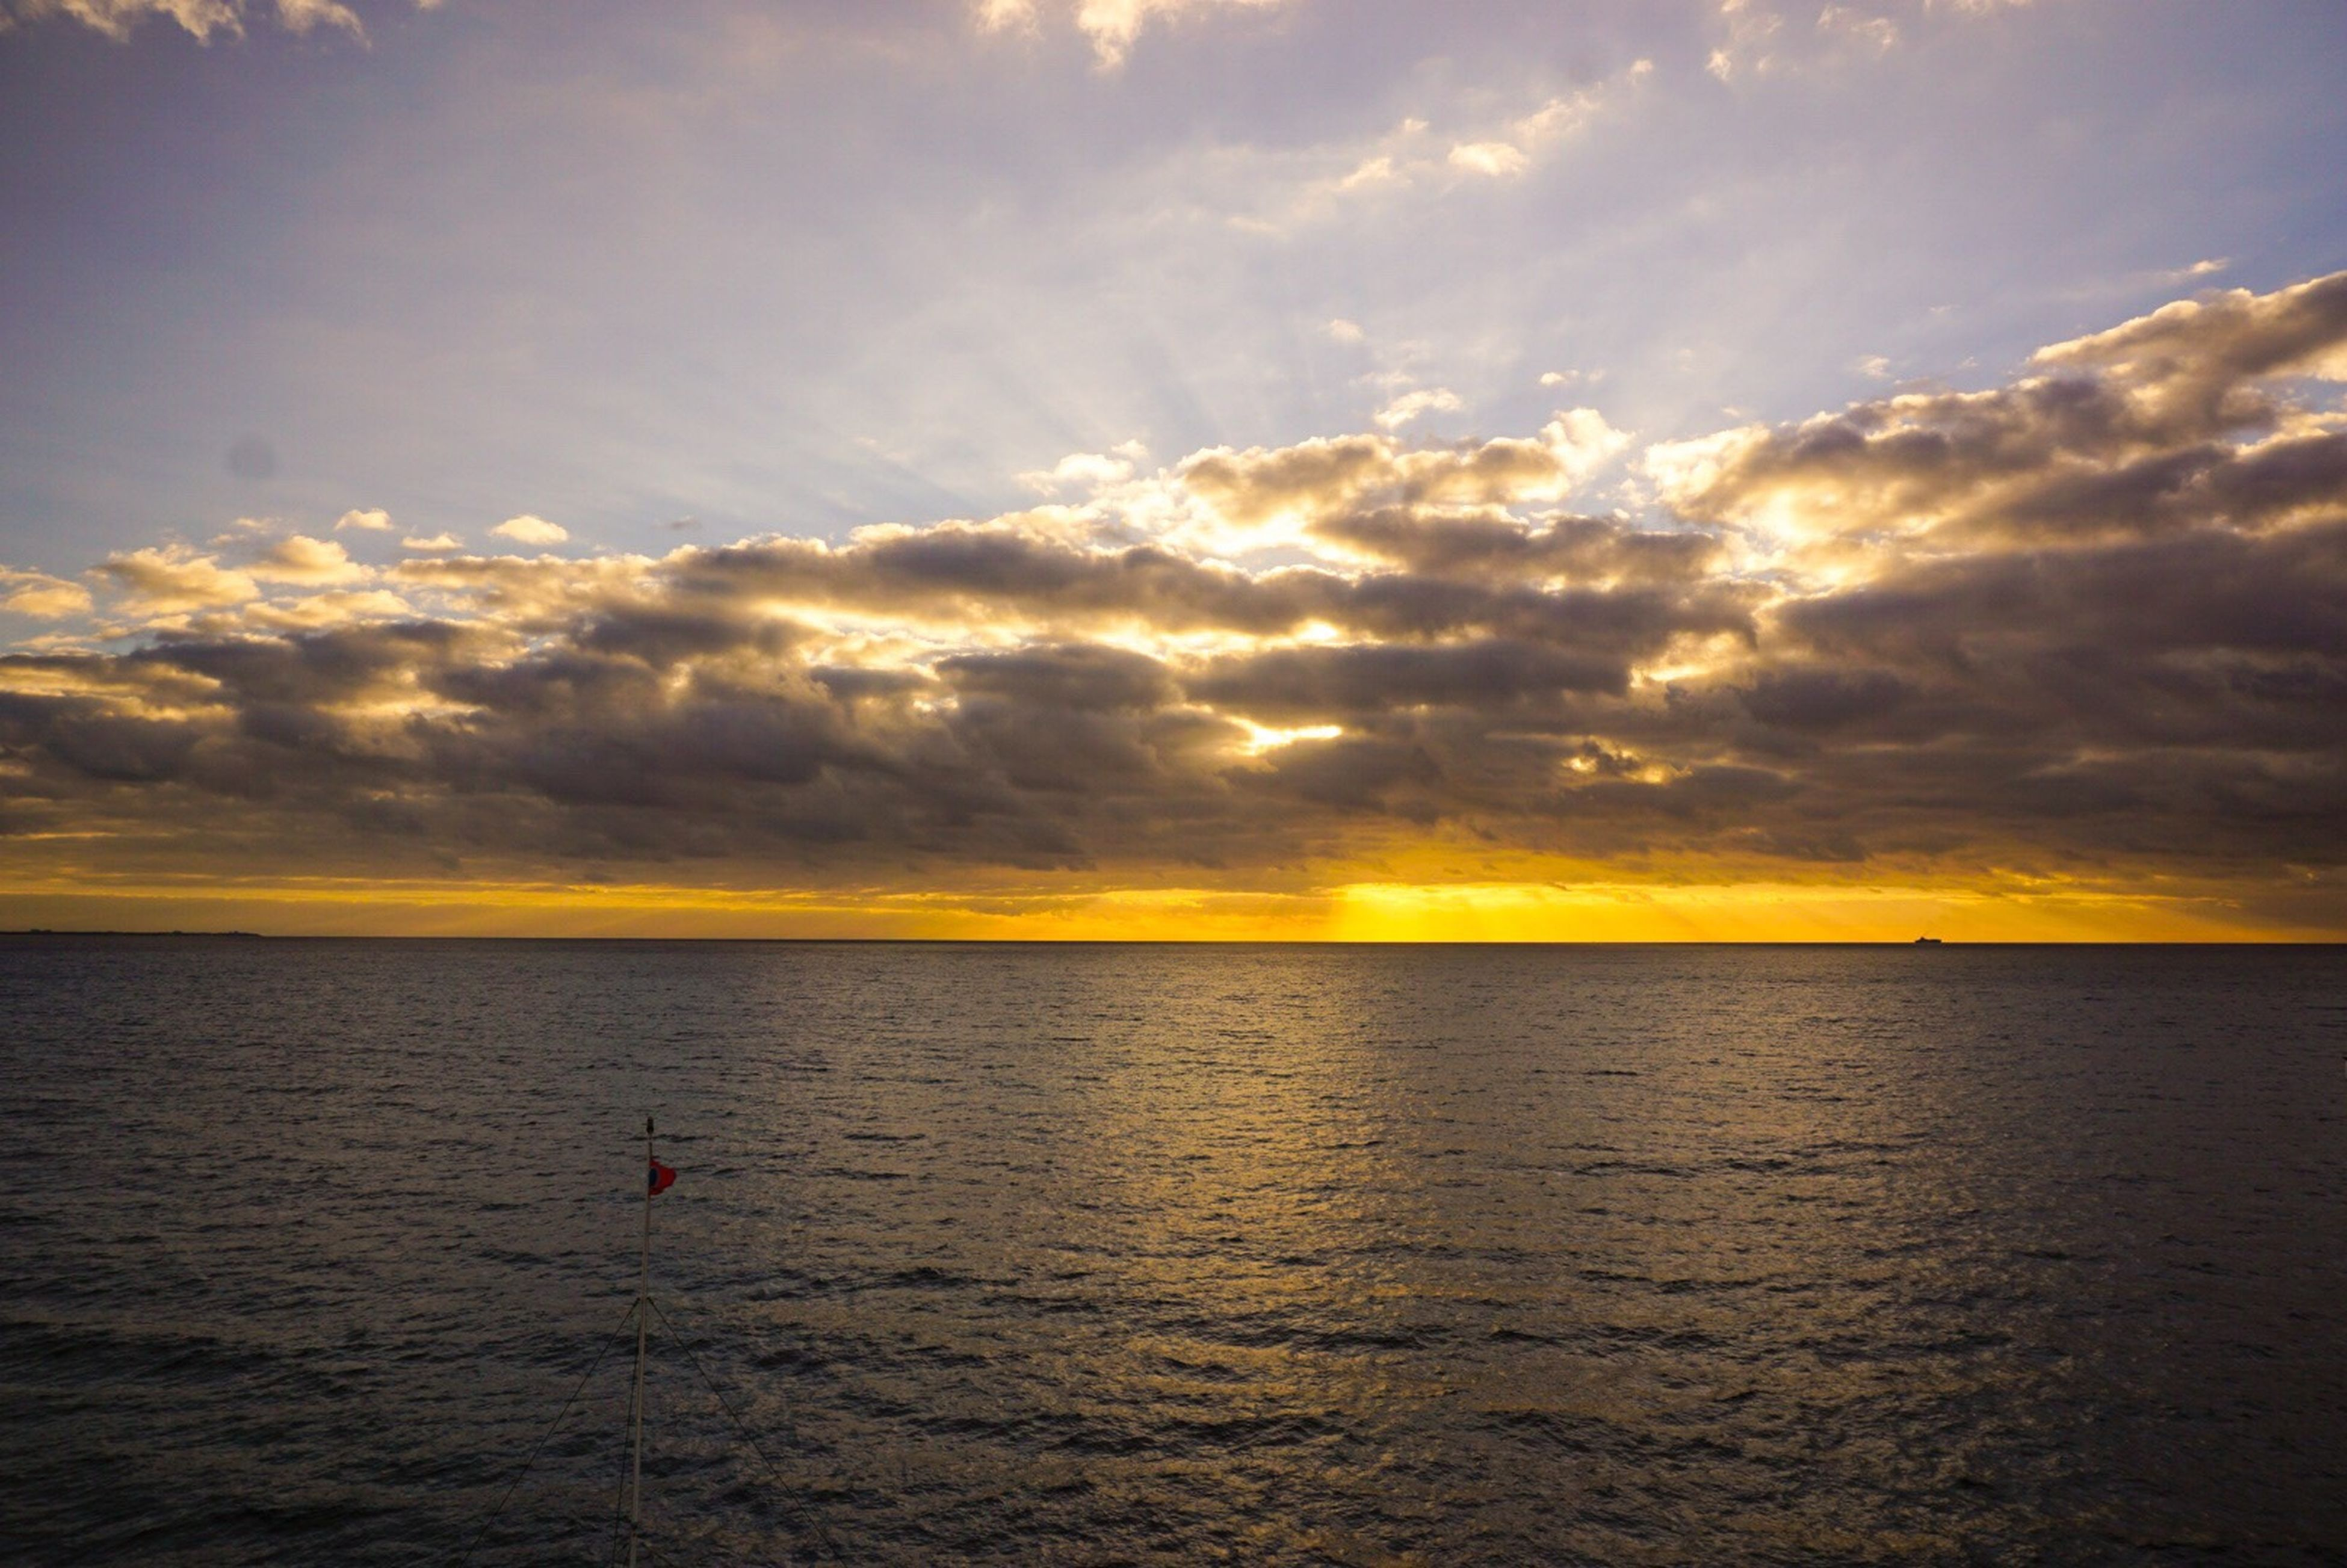 sea, water, sunset, horizon over water, sky, scenics, tranquil scene, beauty in nature, tranquility, waterfront, cloud - sky, idyllic, cloud, nature, rippled, cloudy, orange color, reflection, seascape, sun